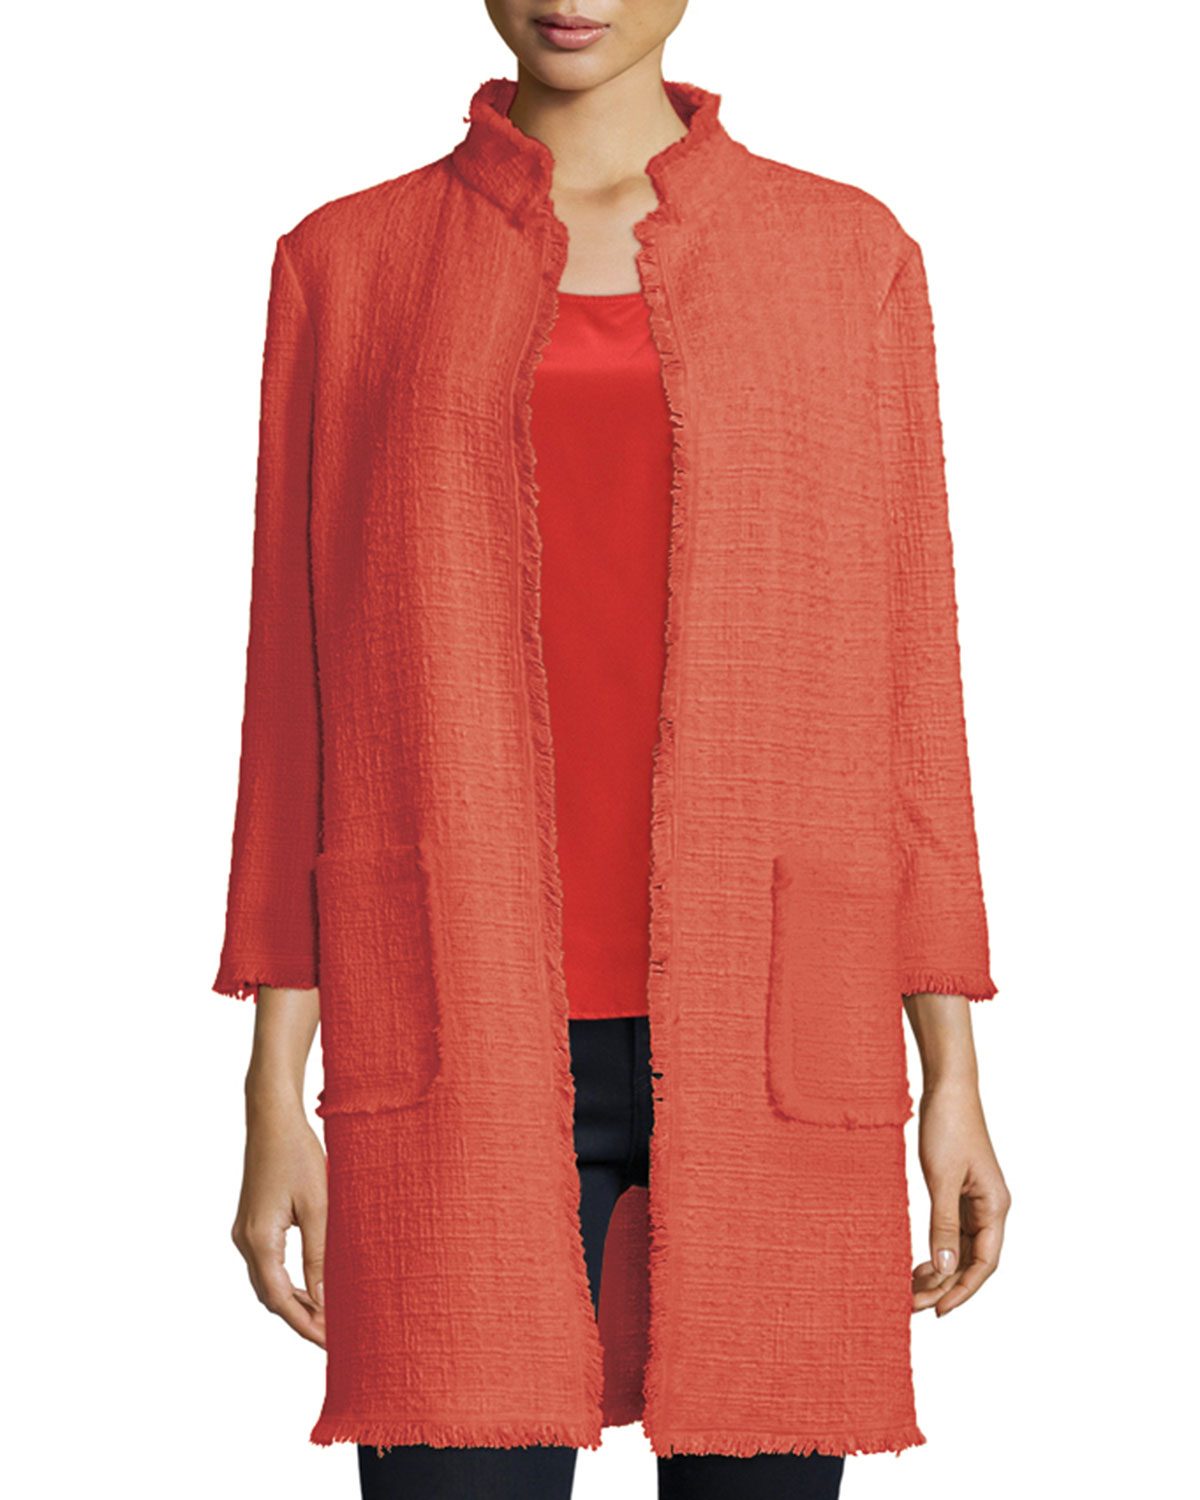 3/4-Sleeve Tweed Topper Coat, Coral, Size: LARGE/12-14 - Neiman Marcus